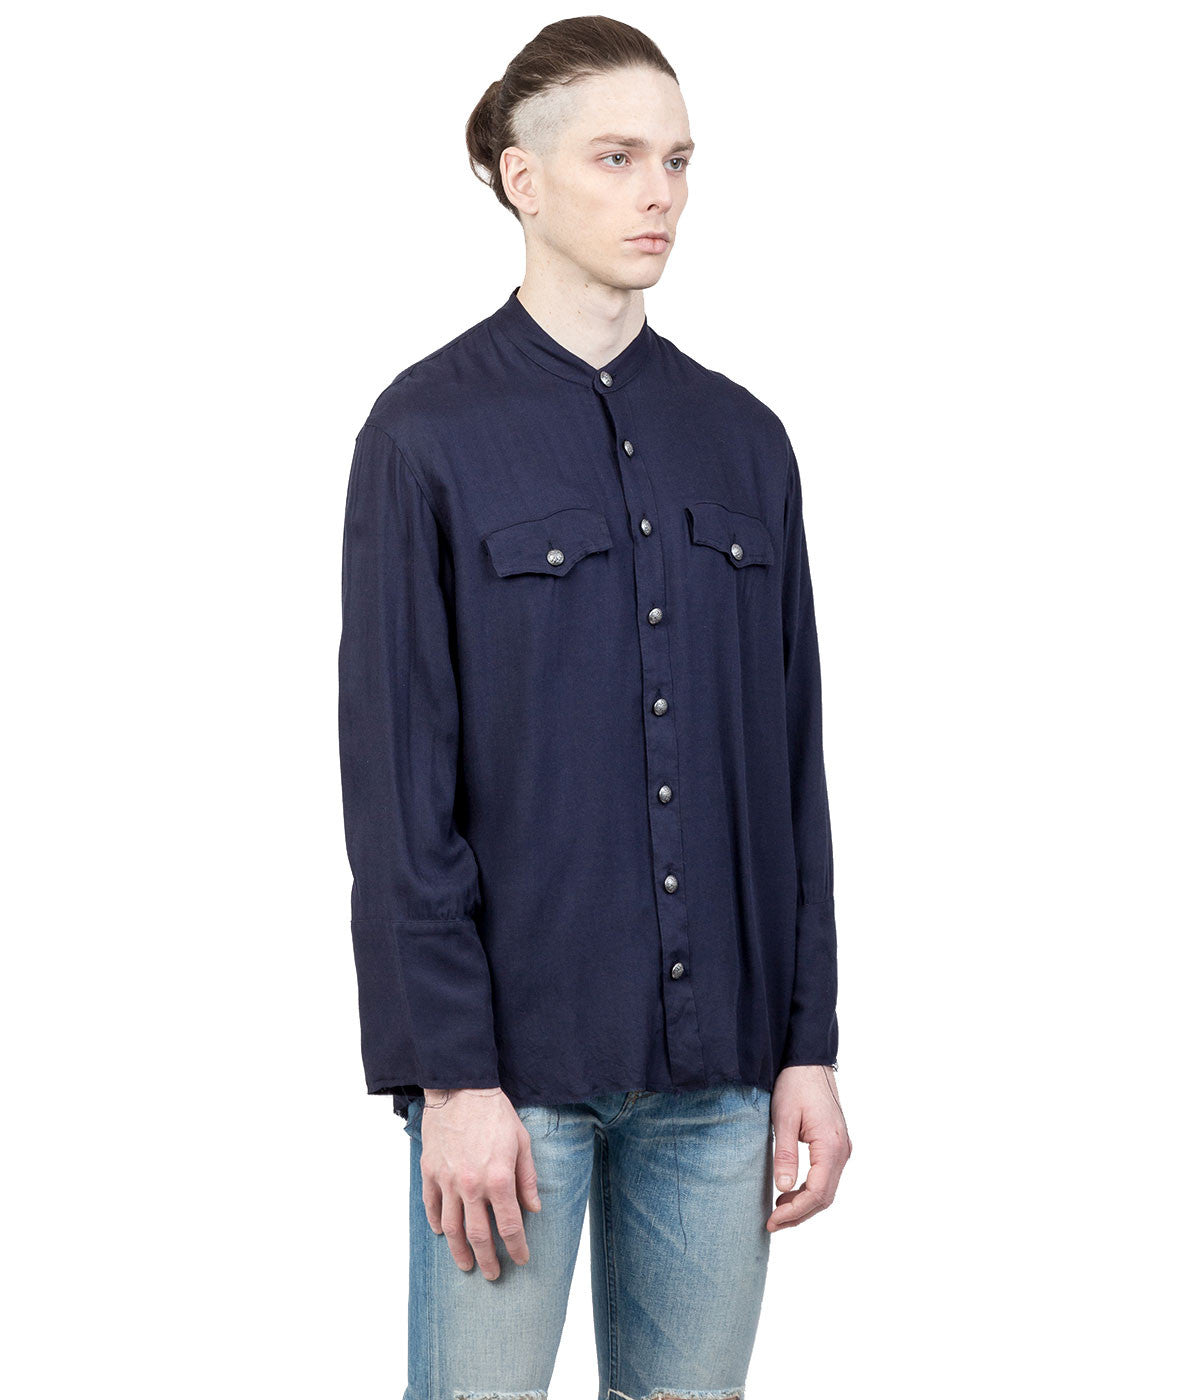 Navy Stand Collar Shirt